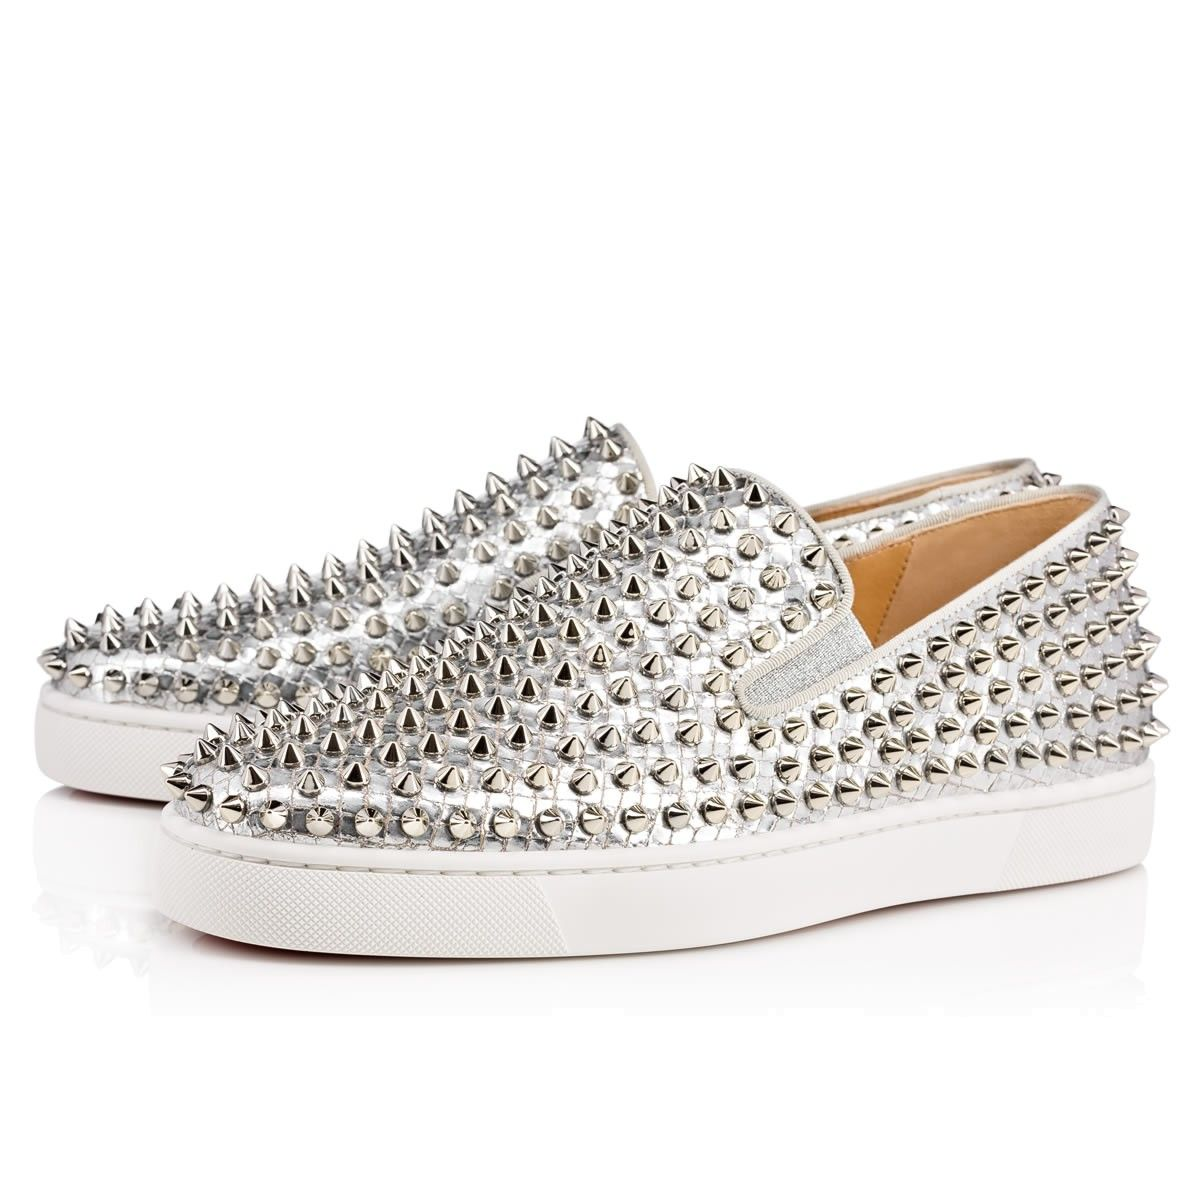 Christian Louboutin United States Official Online Boutique - Roller-Boat  Men\u0027s Flat Silver Lame Sirene available online. Discover more Men Shoes by  ...